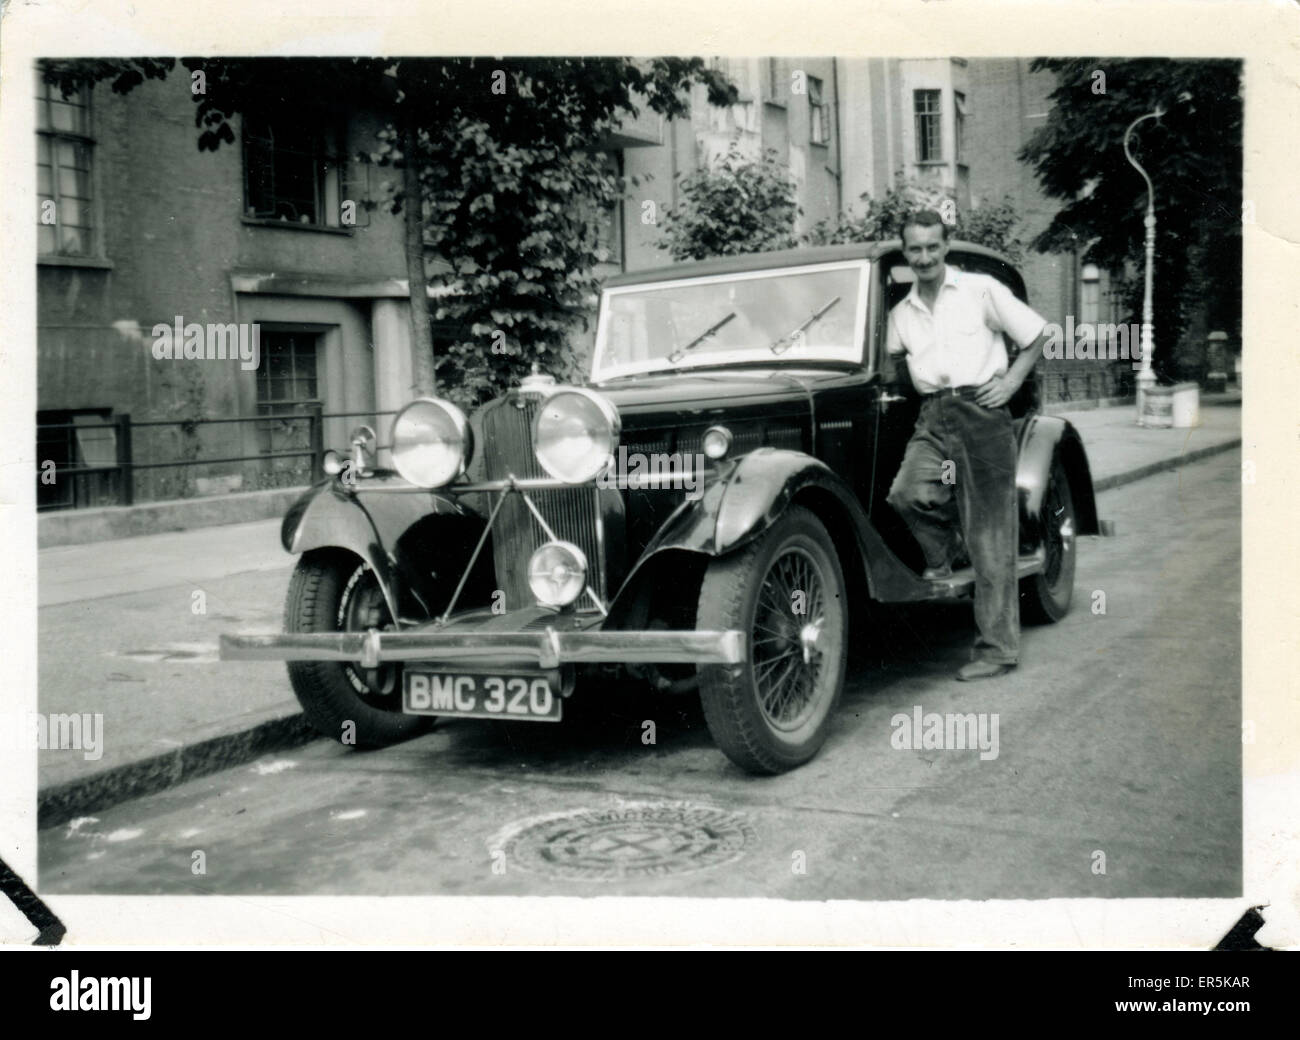 Talbot 105 Vintage Car, Twickenham, County of London, England. Luton registration.  1930s - Stock Image